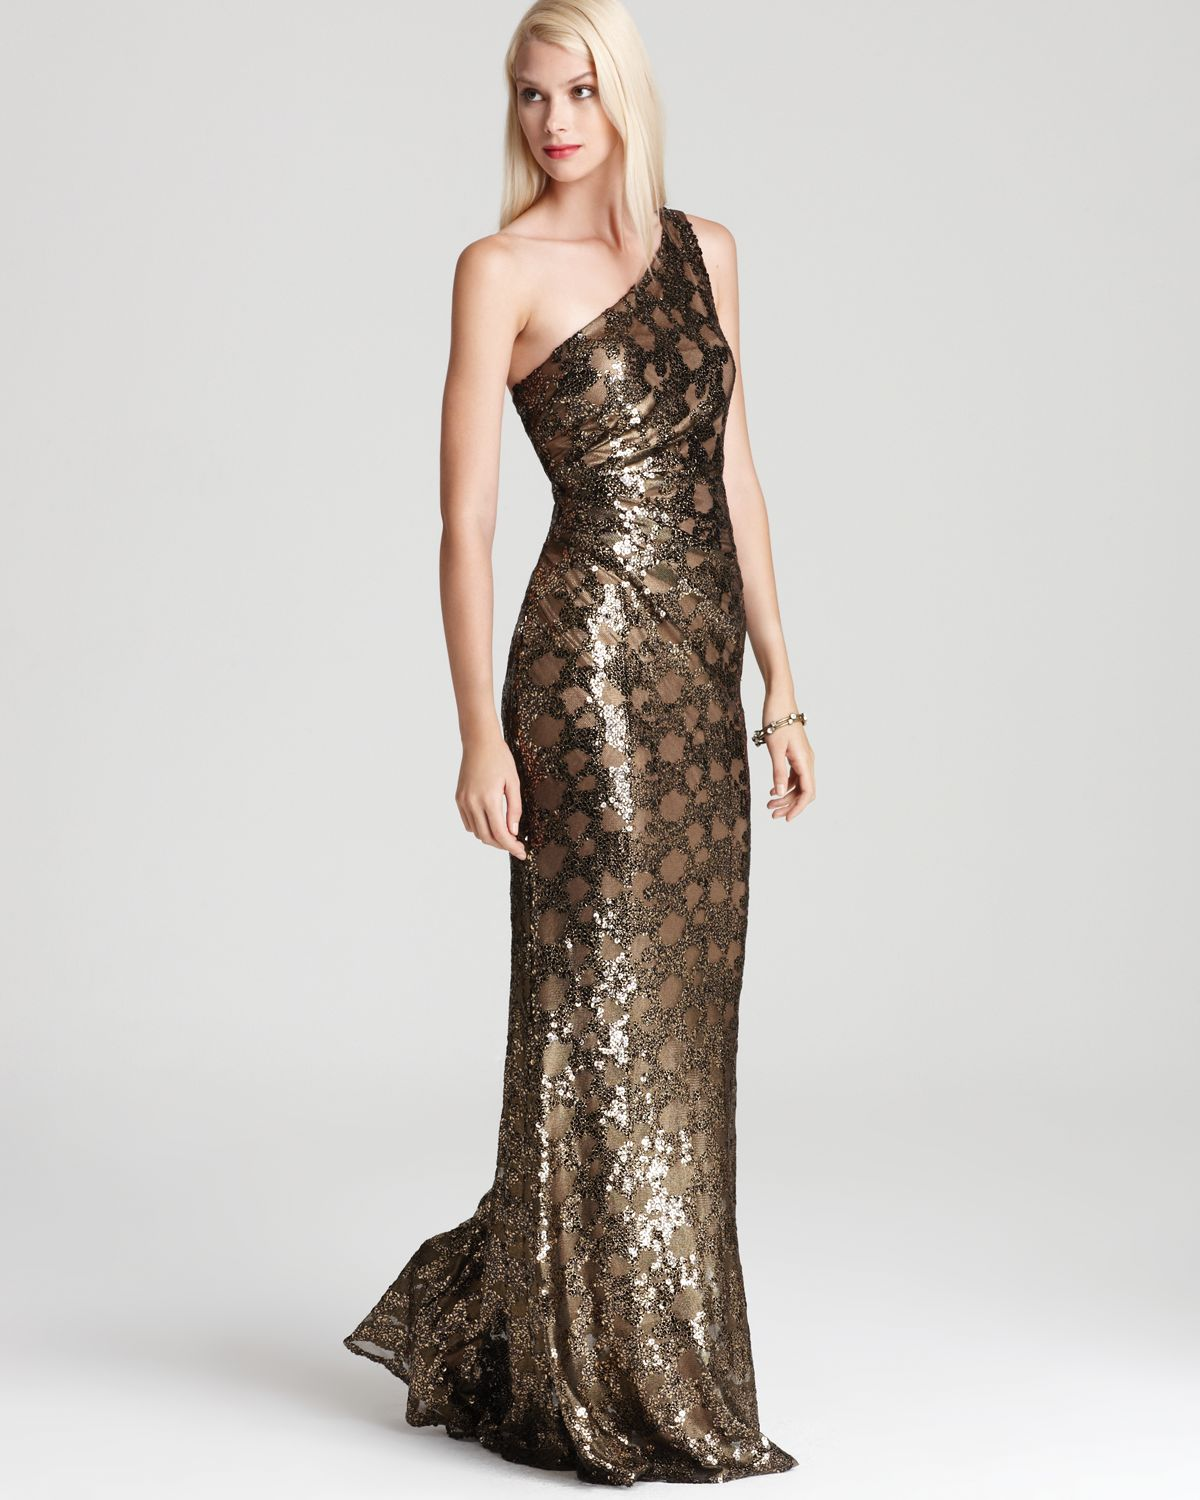 Lyst - David Meister One Shoulder Gown Sequin in Brown